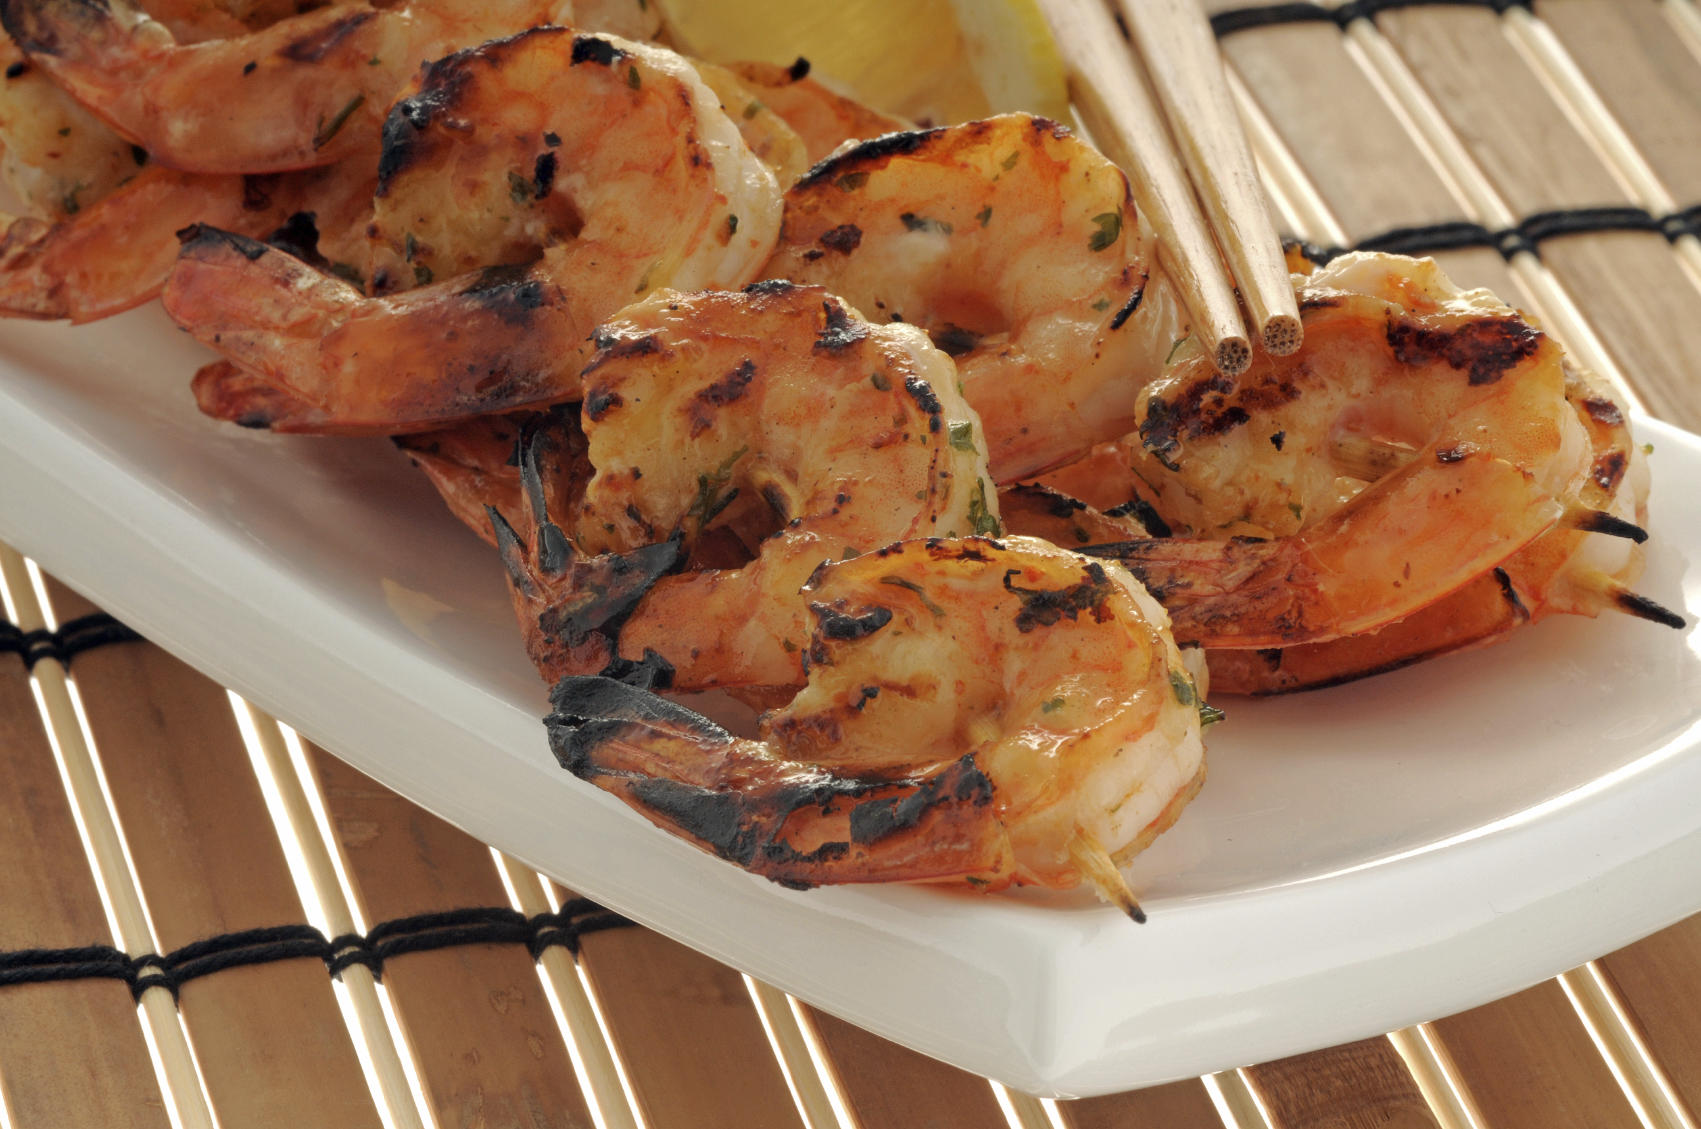 Simple Grilled Shrimp on skewers with fruit salsa